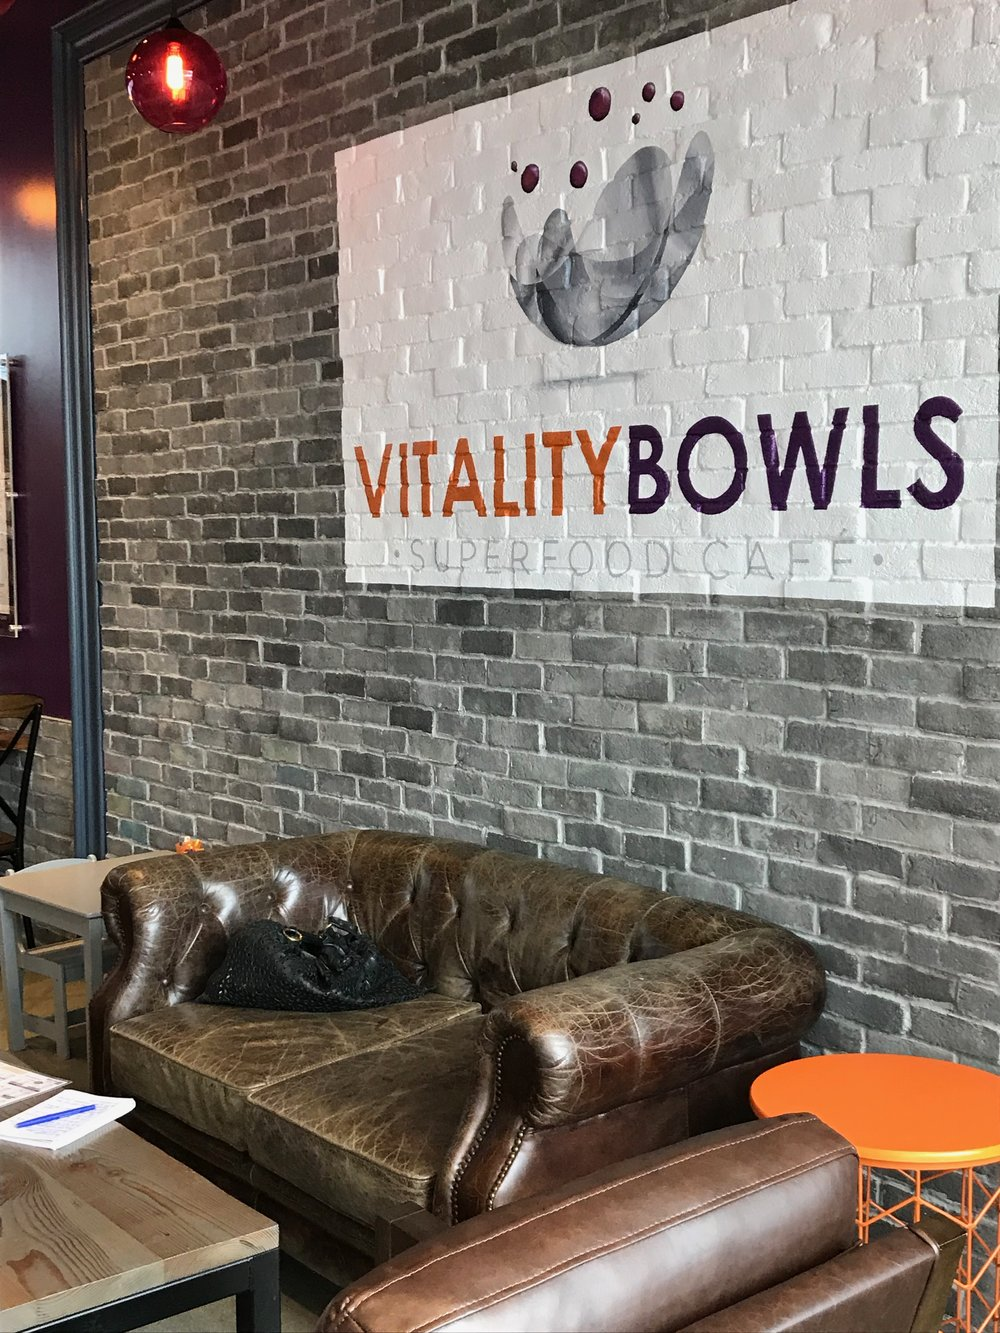 The Omaha location of Vitality Bowls has a homegrown vibe, with a logo designed by Omaha artist Maggie Weber and locally sourced Nebraska barn wood furniture and fixtures. The store also features locally produced beverages including Artemis Tea, Hill of Beans coffee and on-tap Kombucha from FishEye Kombucha.